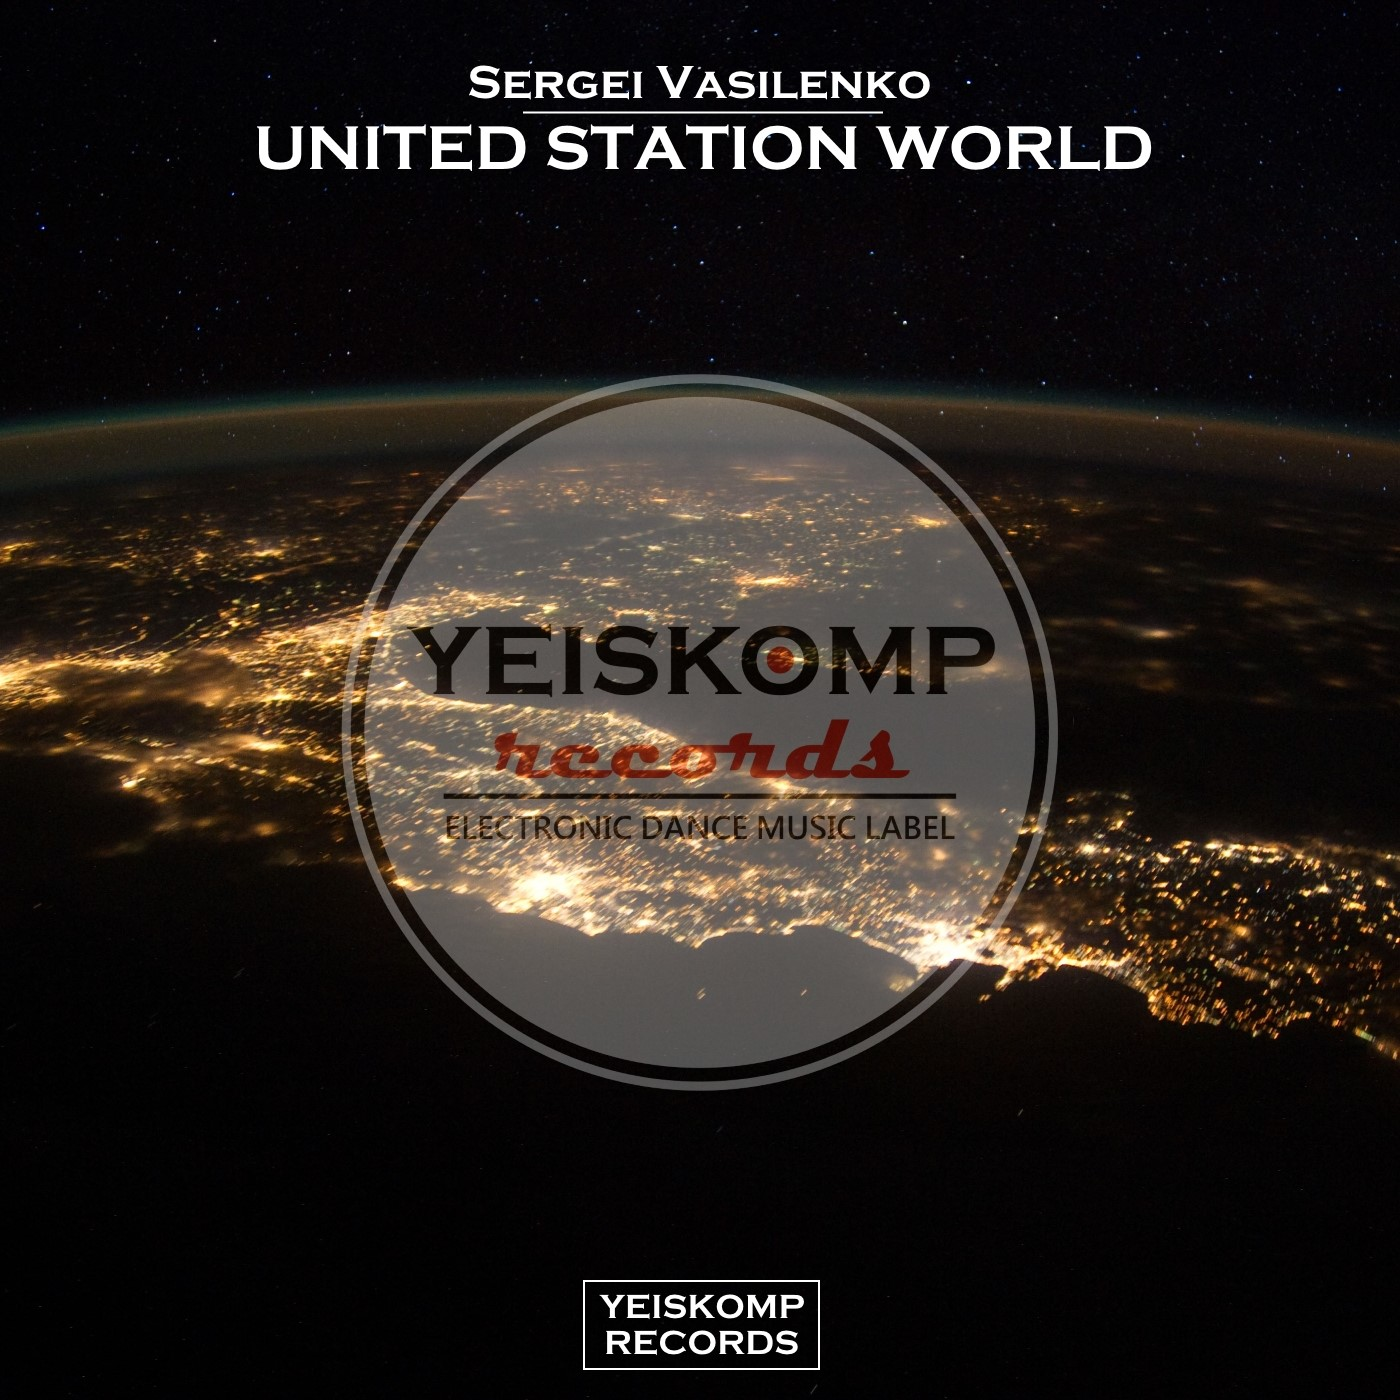 Sergei Vasilenko - United Station World (Original Mix)